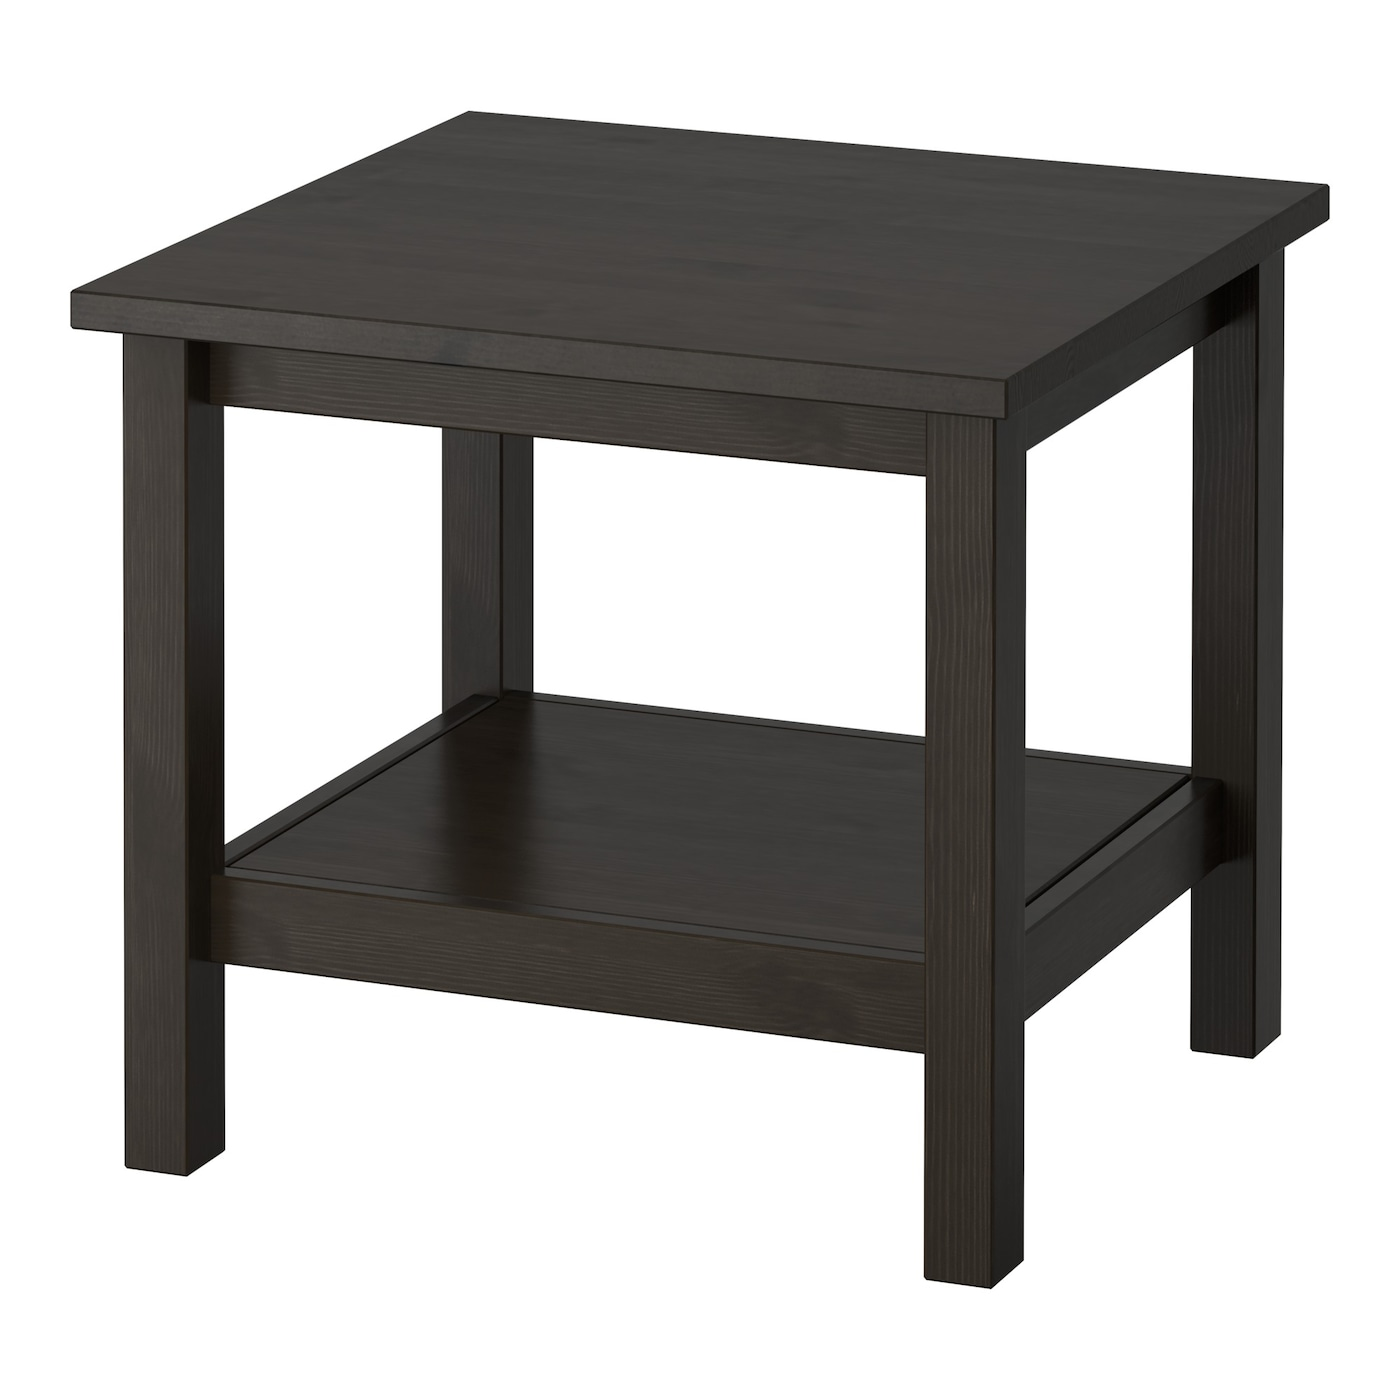 hemnes side table black brown 55x55 cm ikea. Black Bedroom Furniture Sets. Home Design Ideas